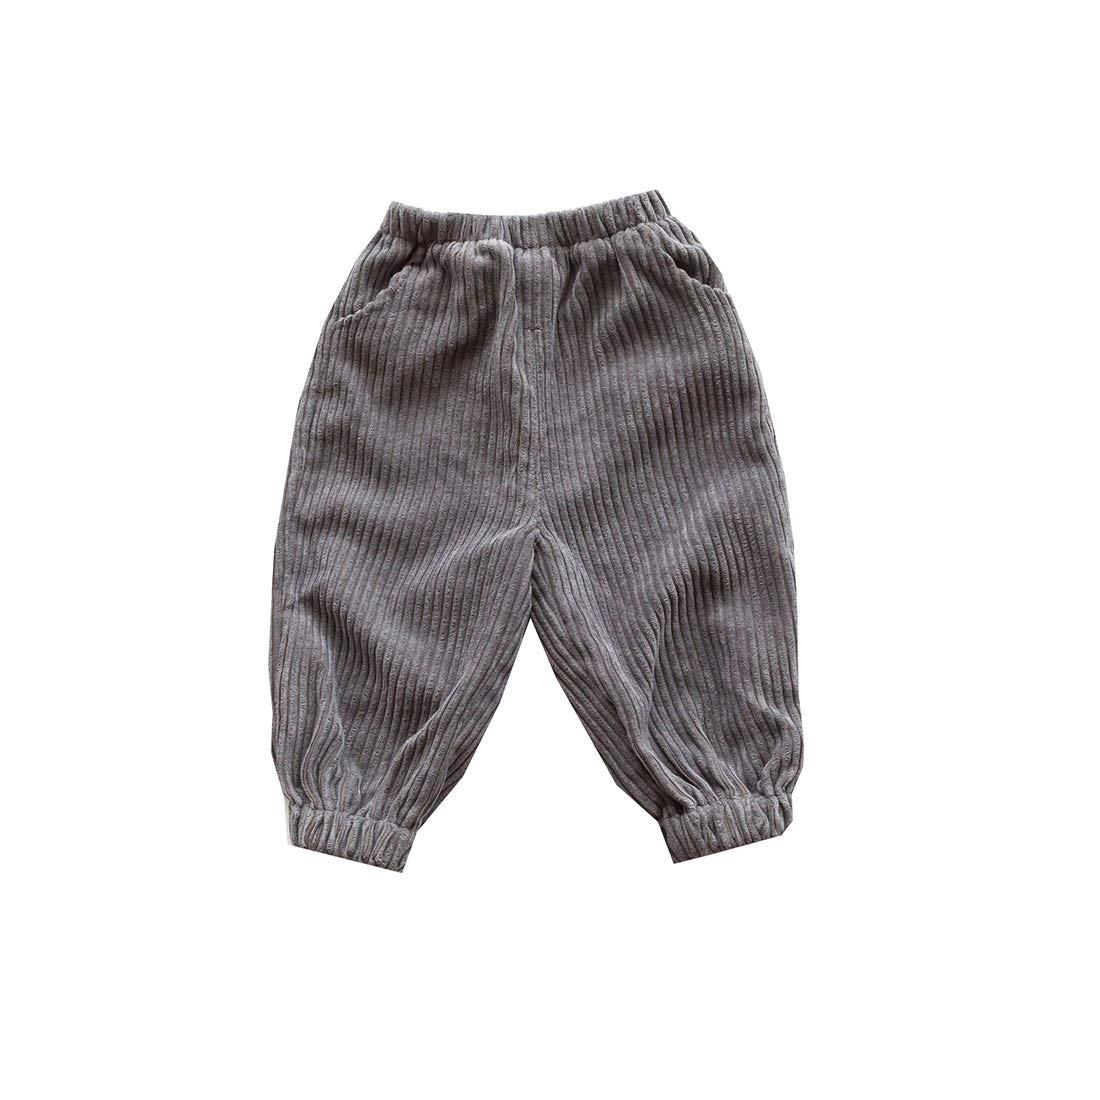 AIKSSOO Toddler Baby Kids Little Boy Girl Retro Casual Corduroy Pants Trousers